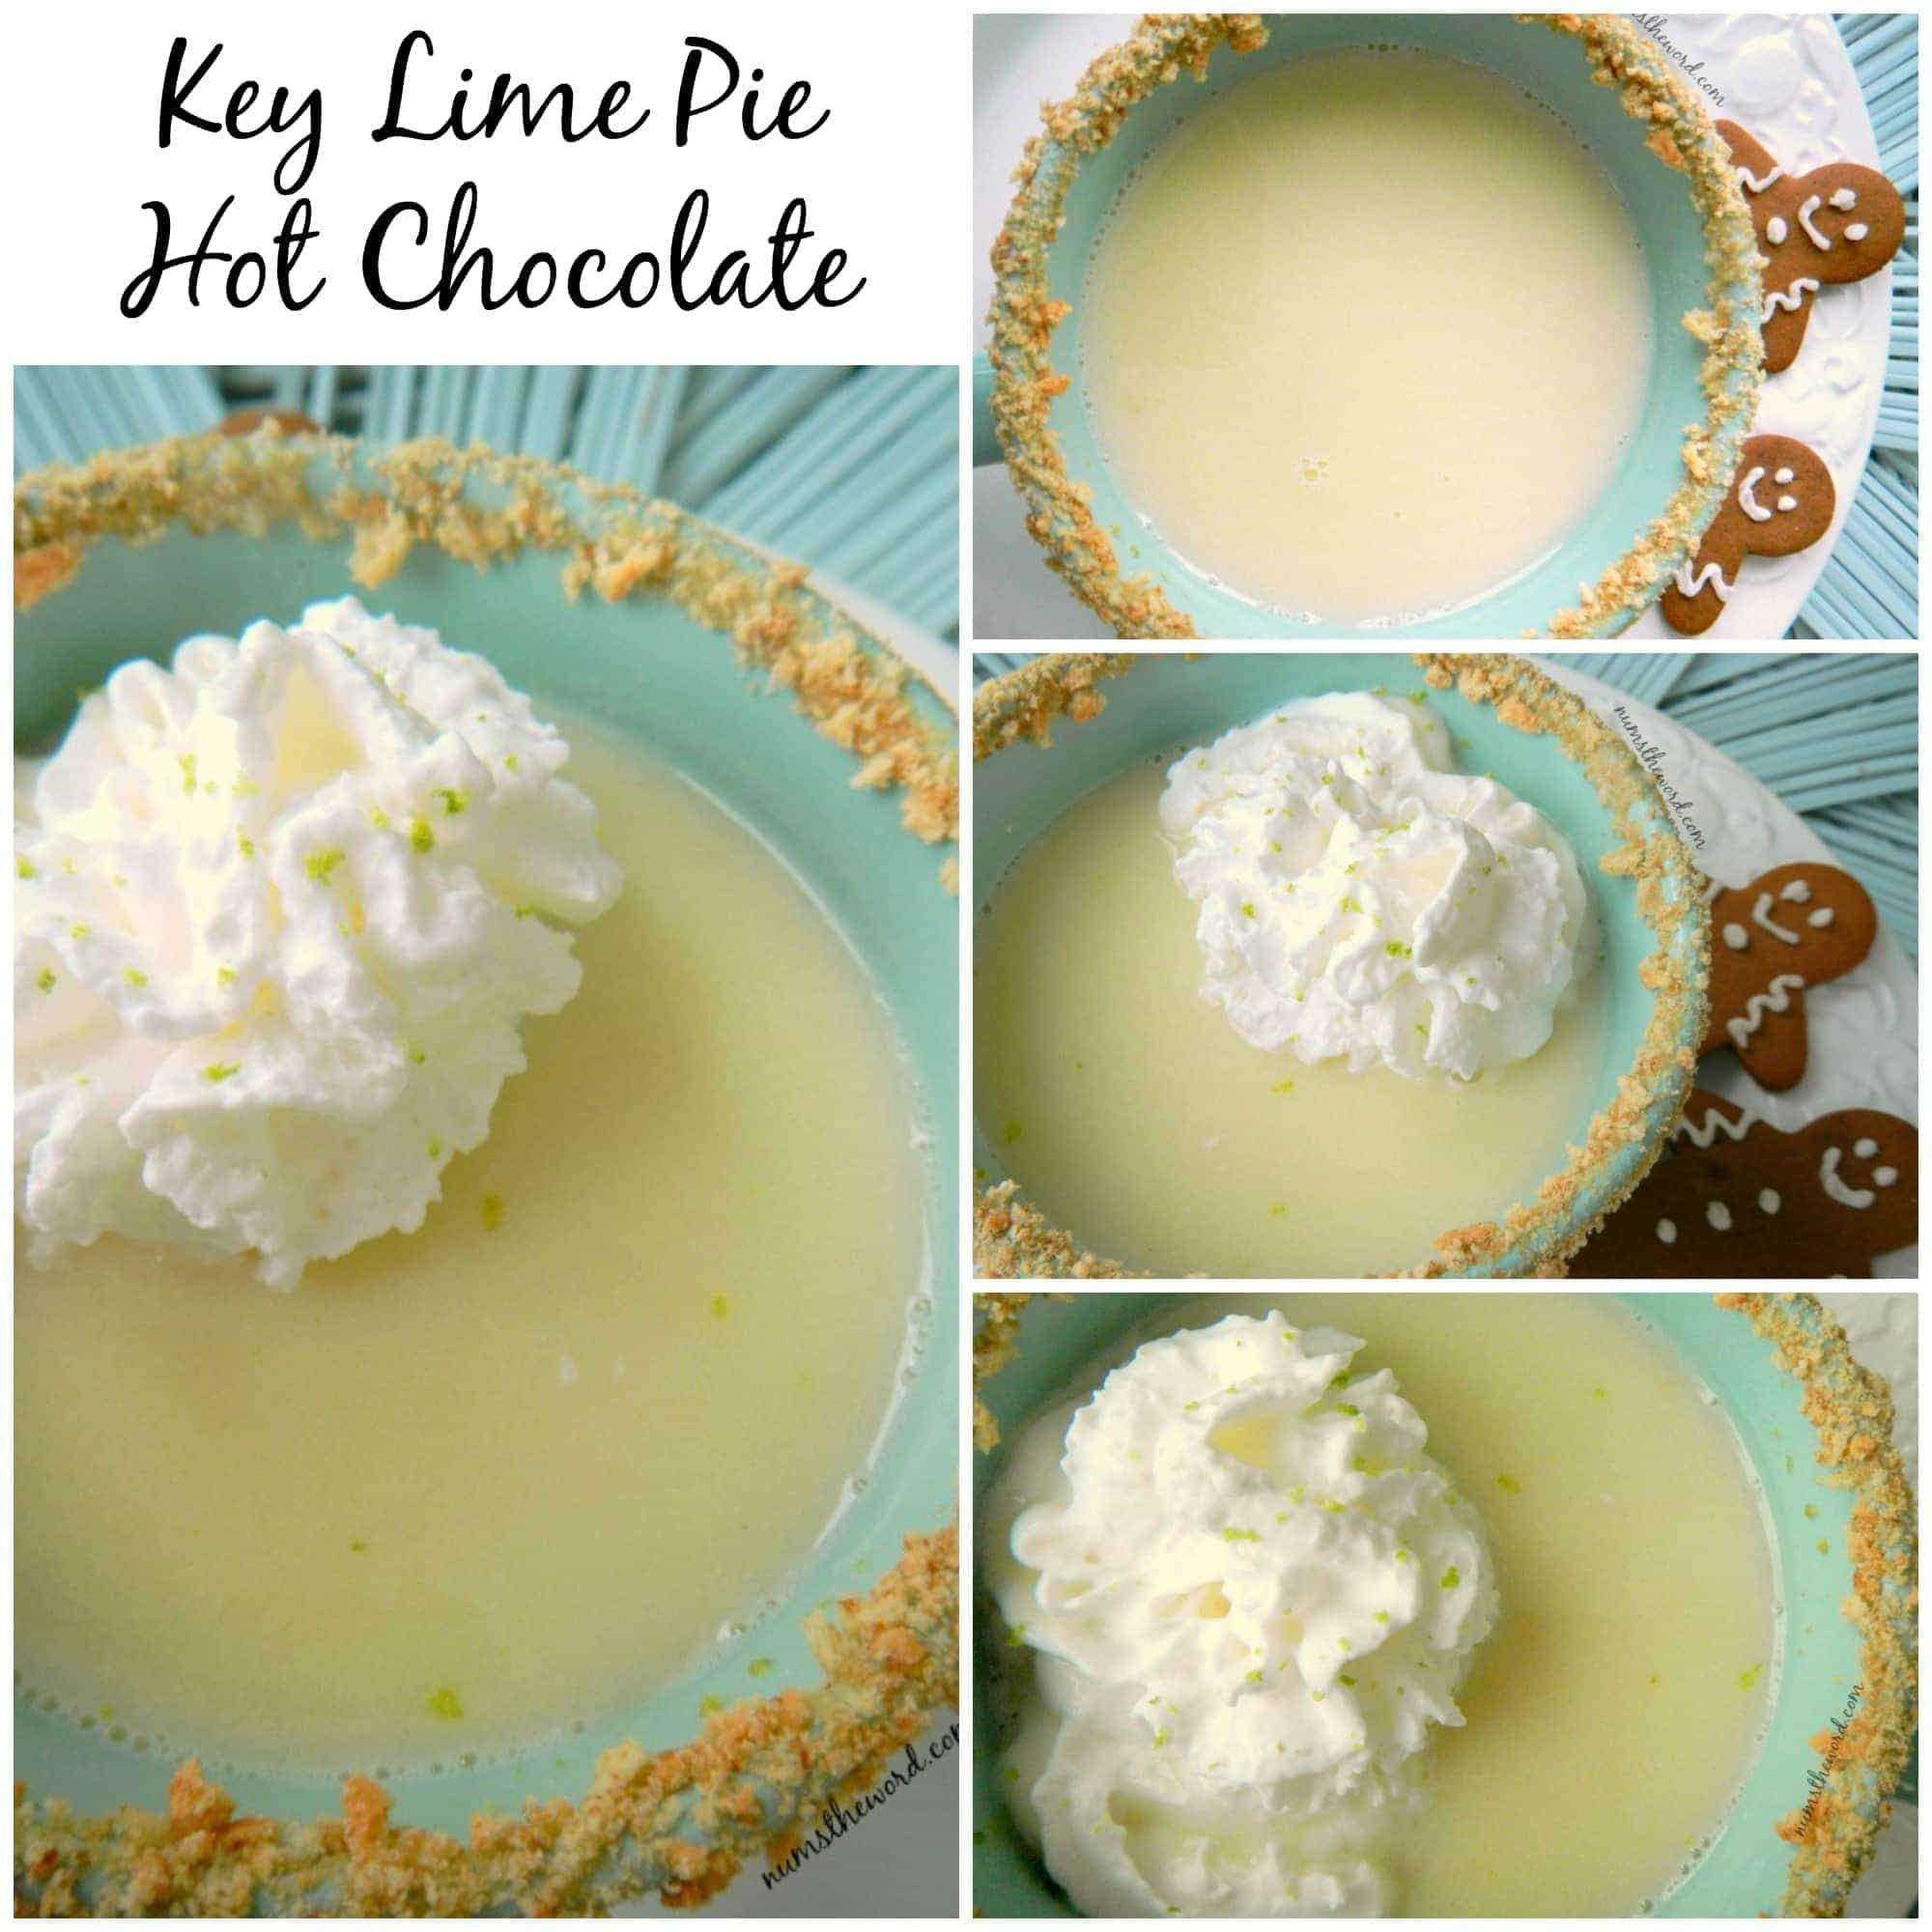 Key Lime Pie Hot Chocolate